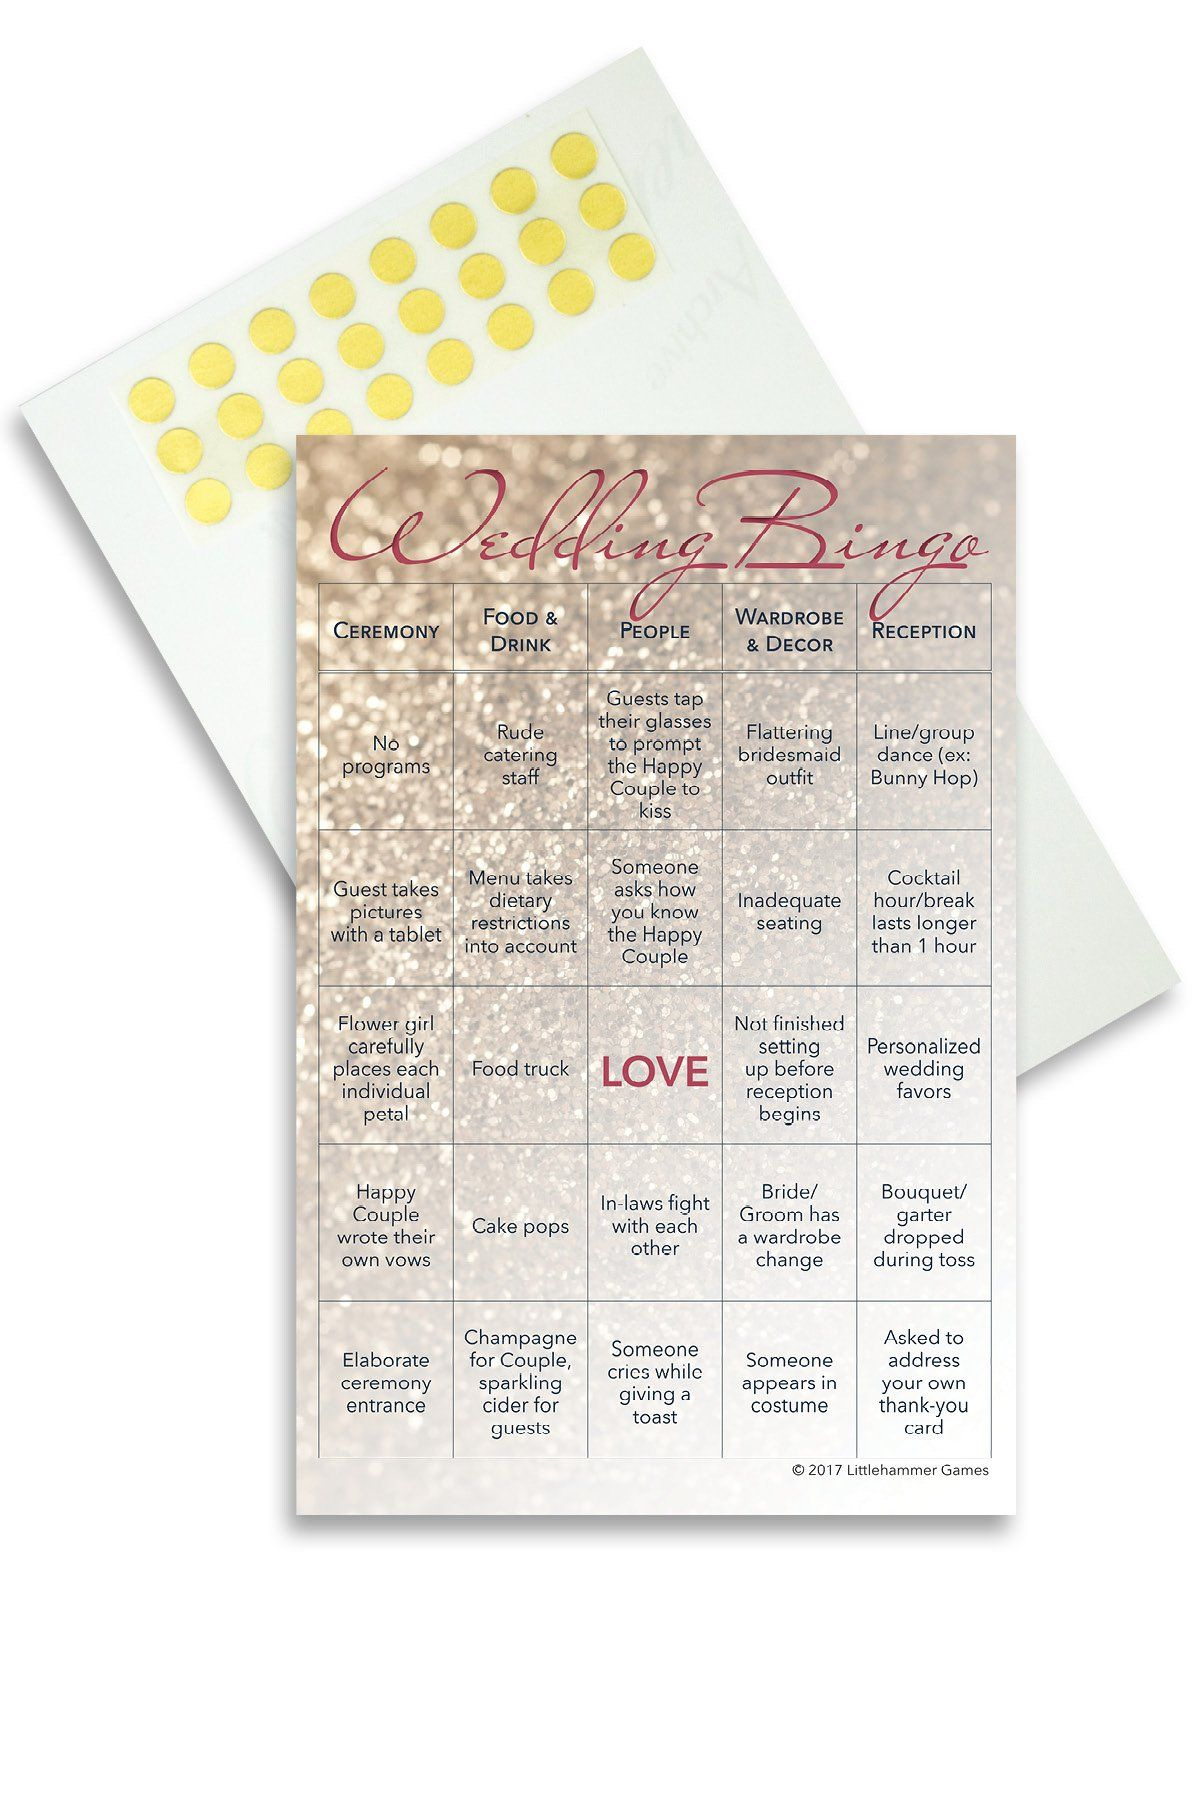 Wedding Bingo 100 Card Printed Set With Gold Stickers For Marking